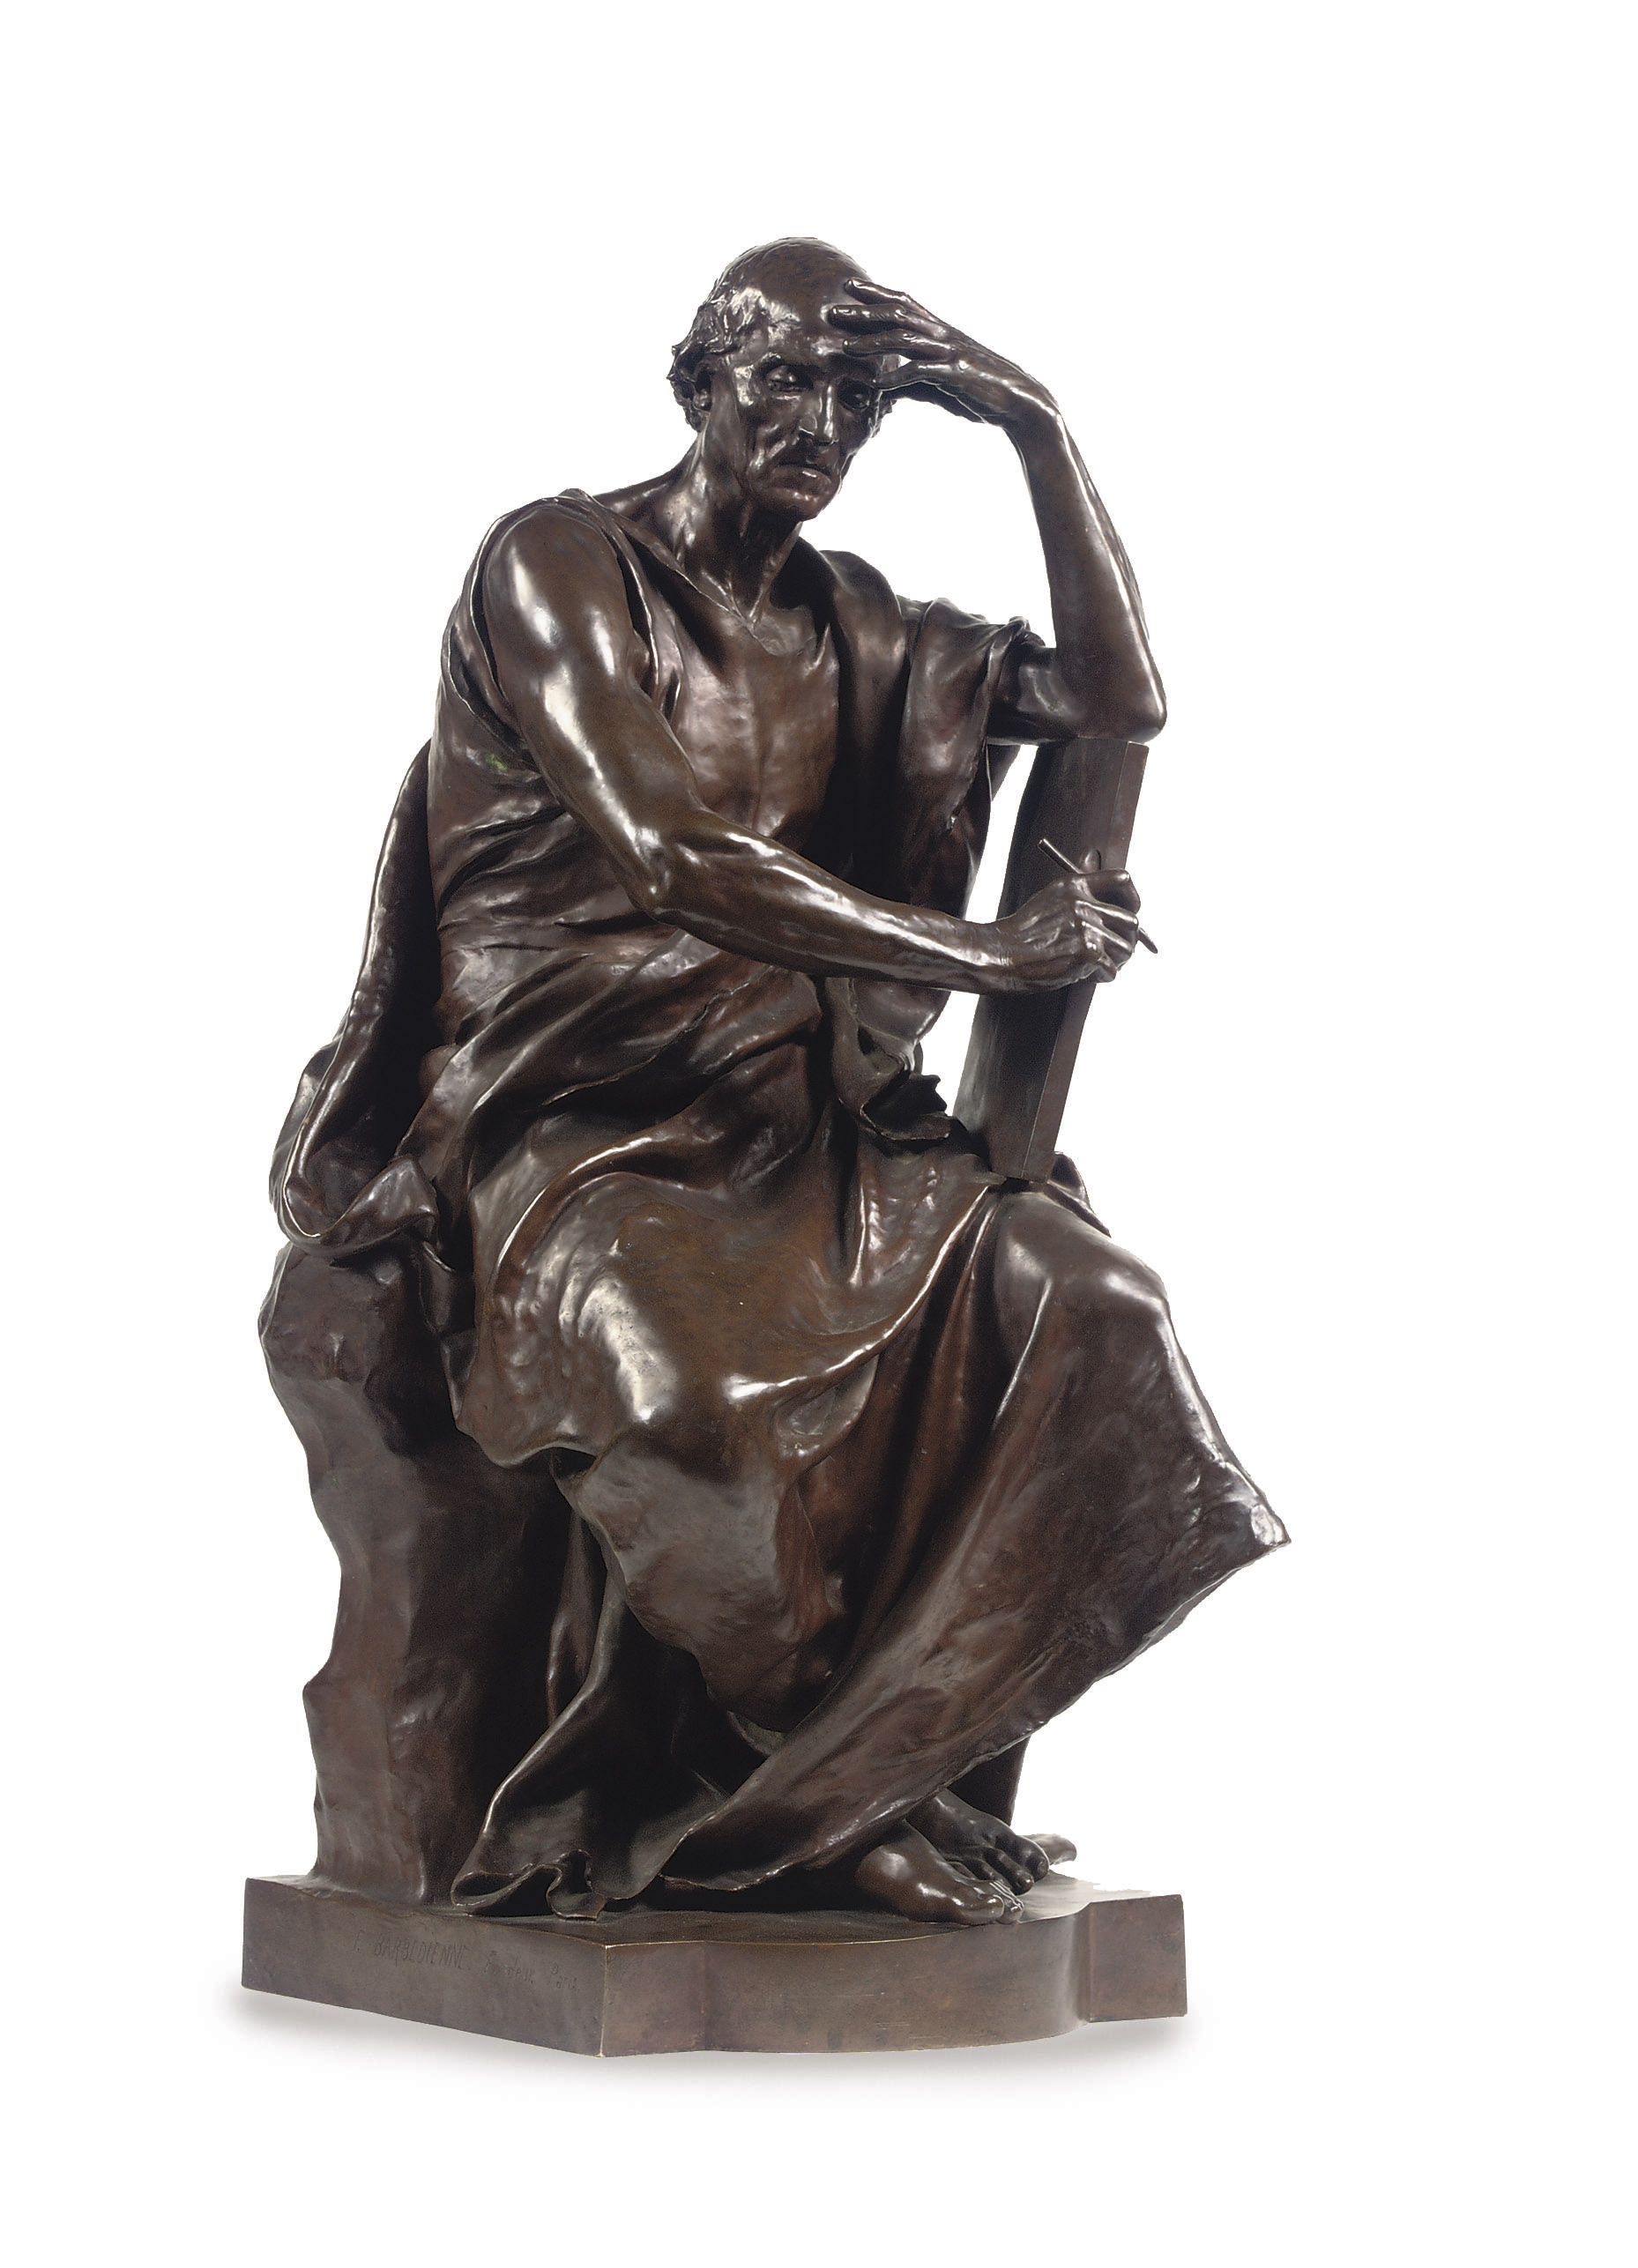 A FRENCH BRONZE FIGURE ENTITLED ÉTUDE ET MÉDITATION (EDUCATION AND THOUGHT)